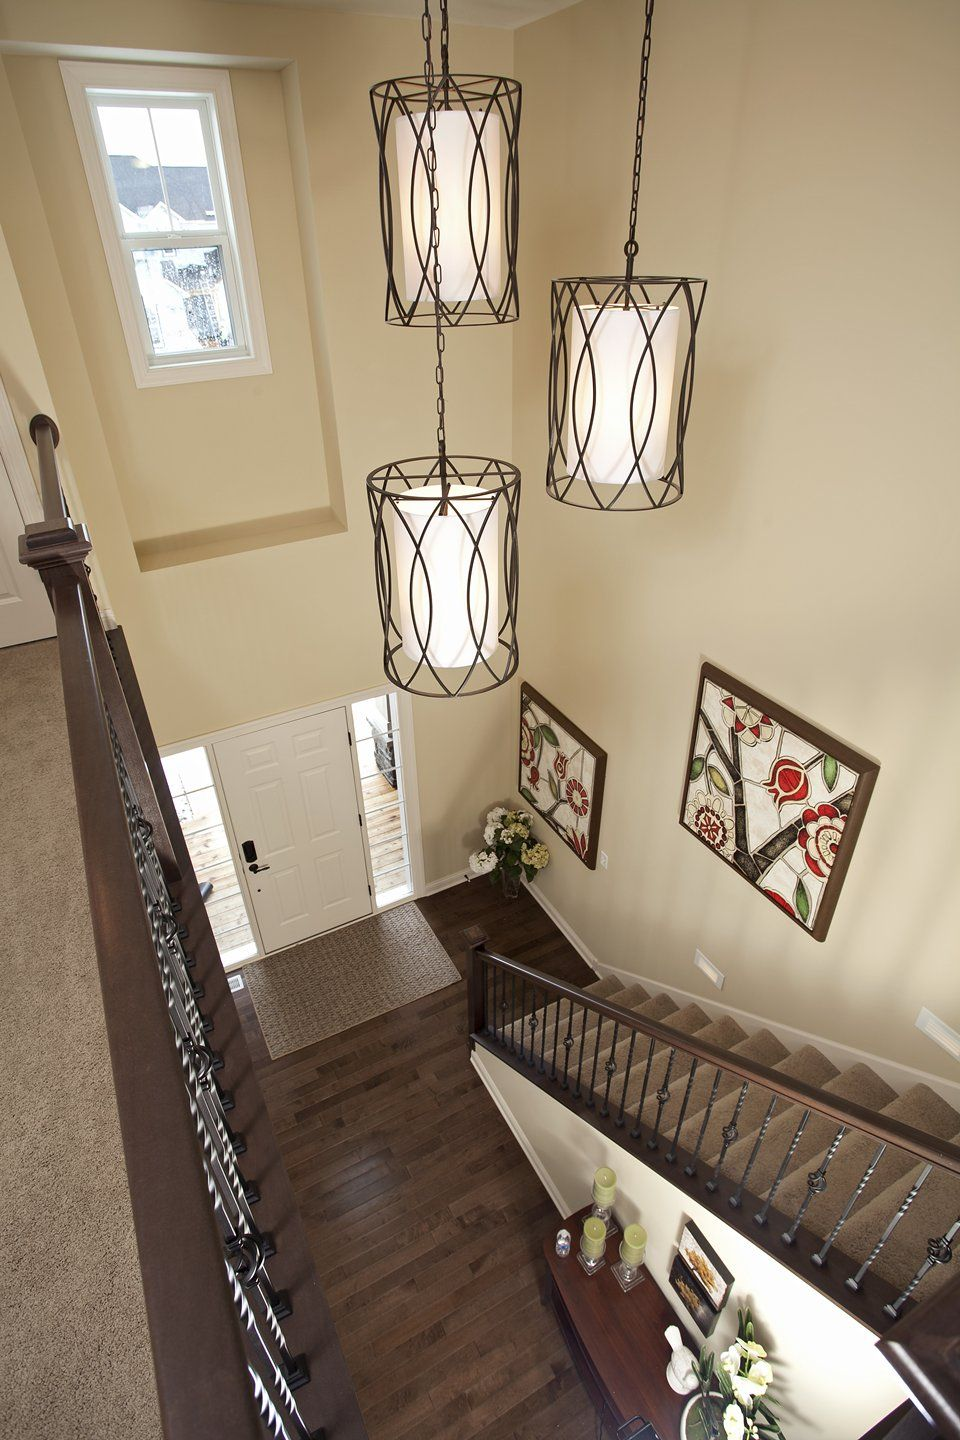 Basement Stair Lighting Pendant: These Would Be Cool In Your Entry Way, Would Tie Into That